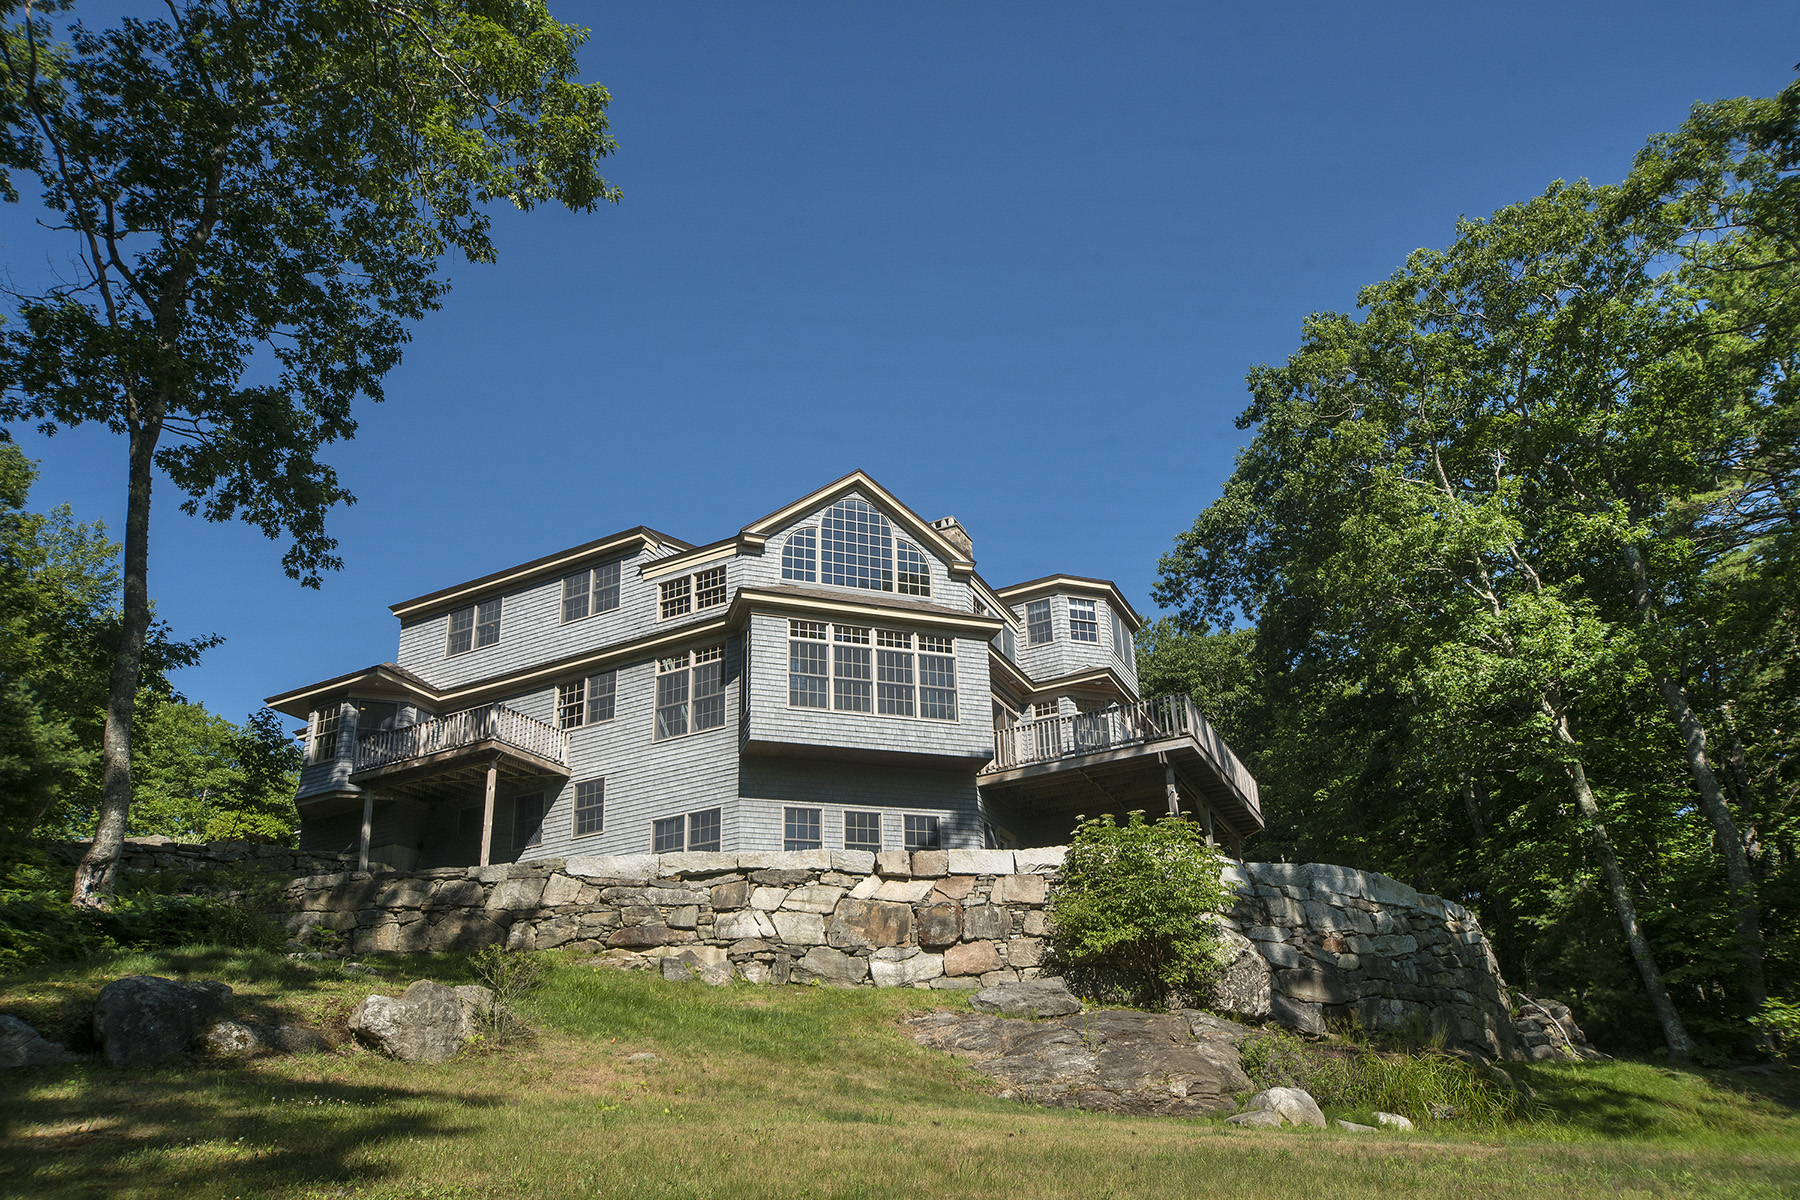 Single Family Home for Sale at Captain John Parker Road 56 Captain John Parker Road Phippsburg, Maine 04562 United States